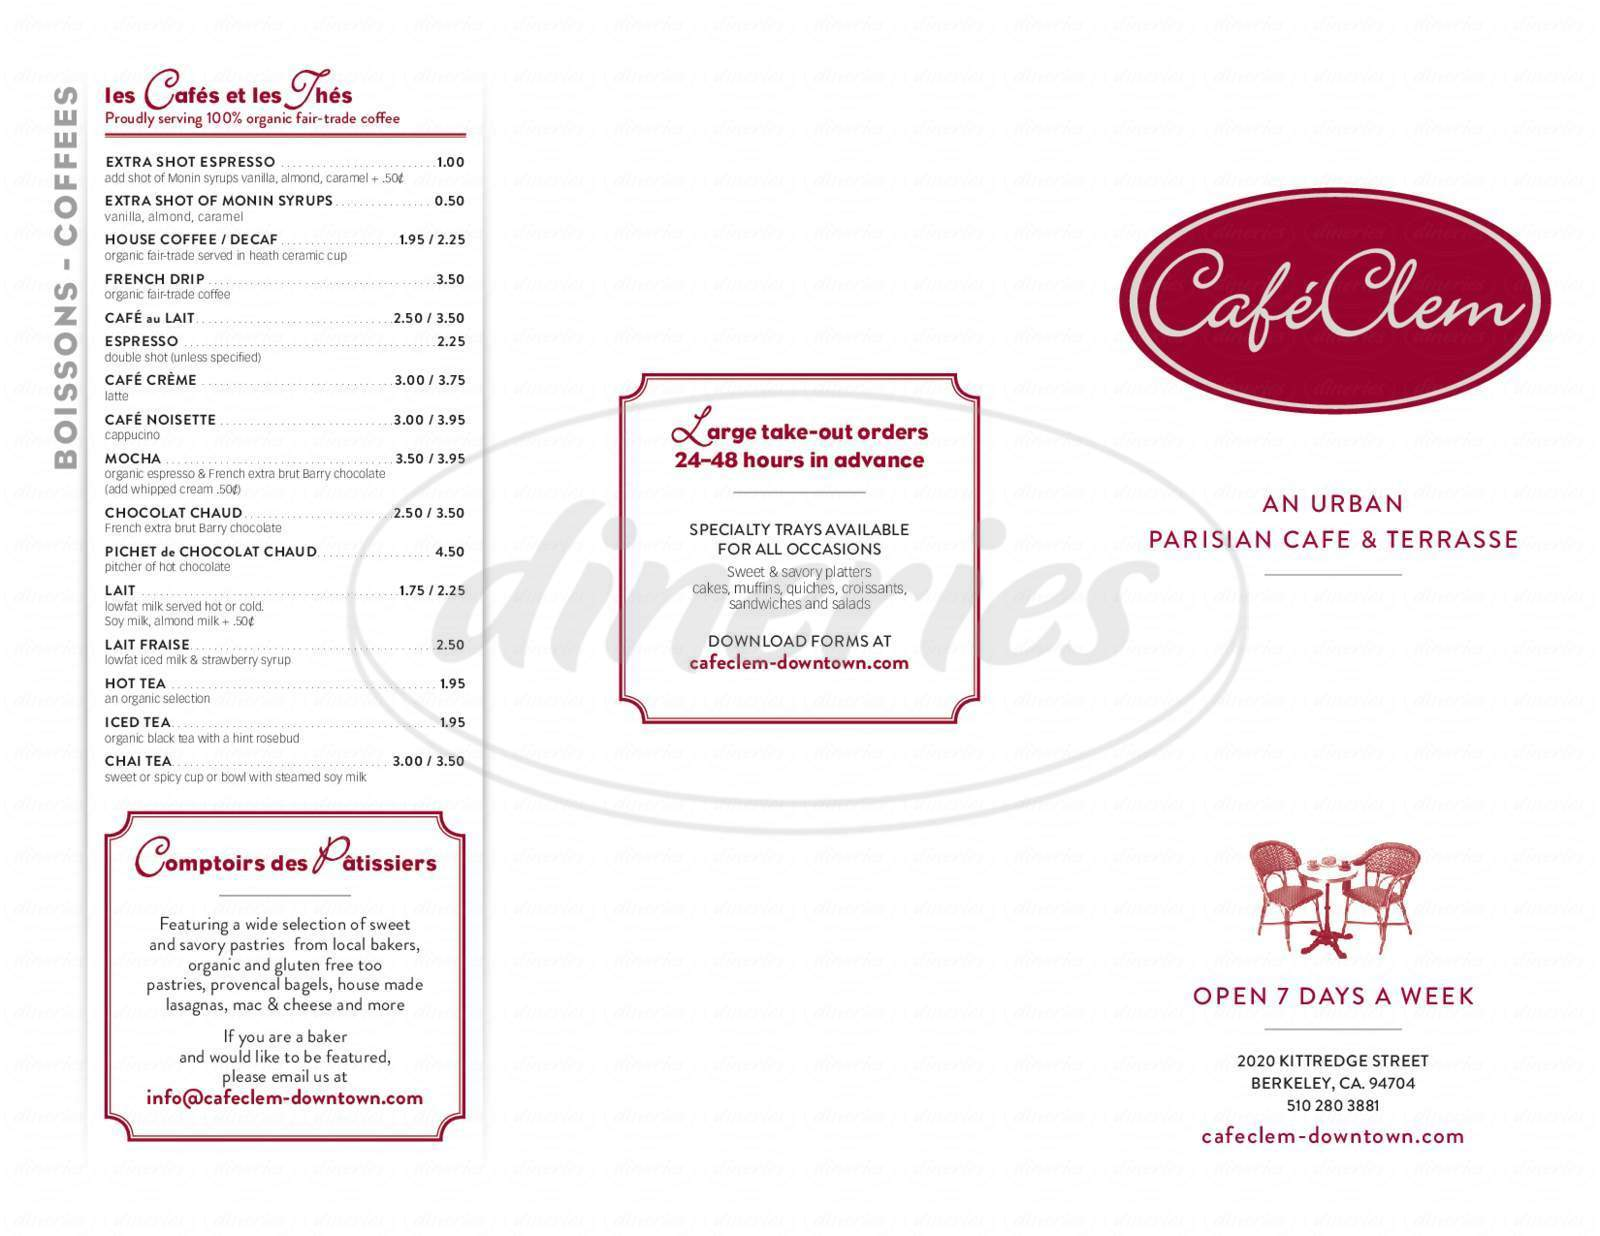 menu for Café Clem